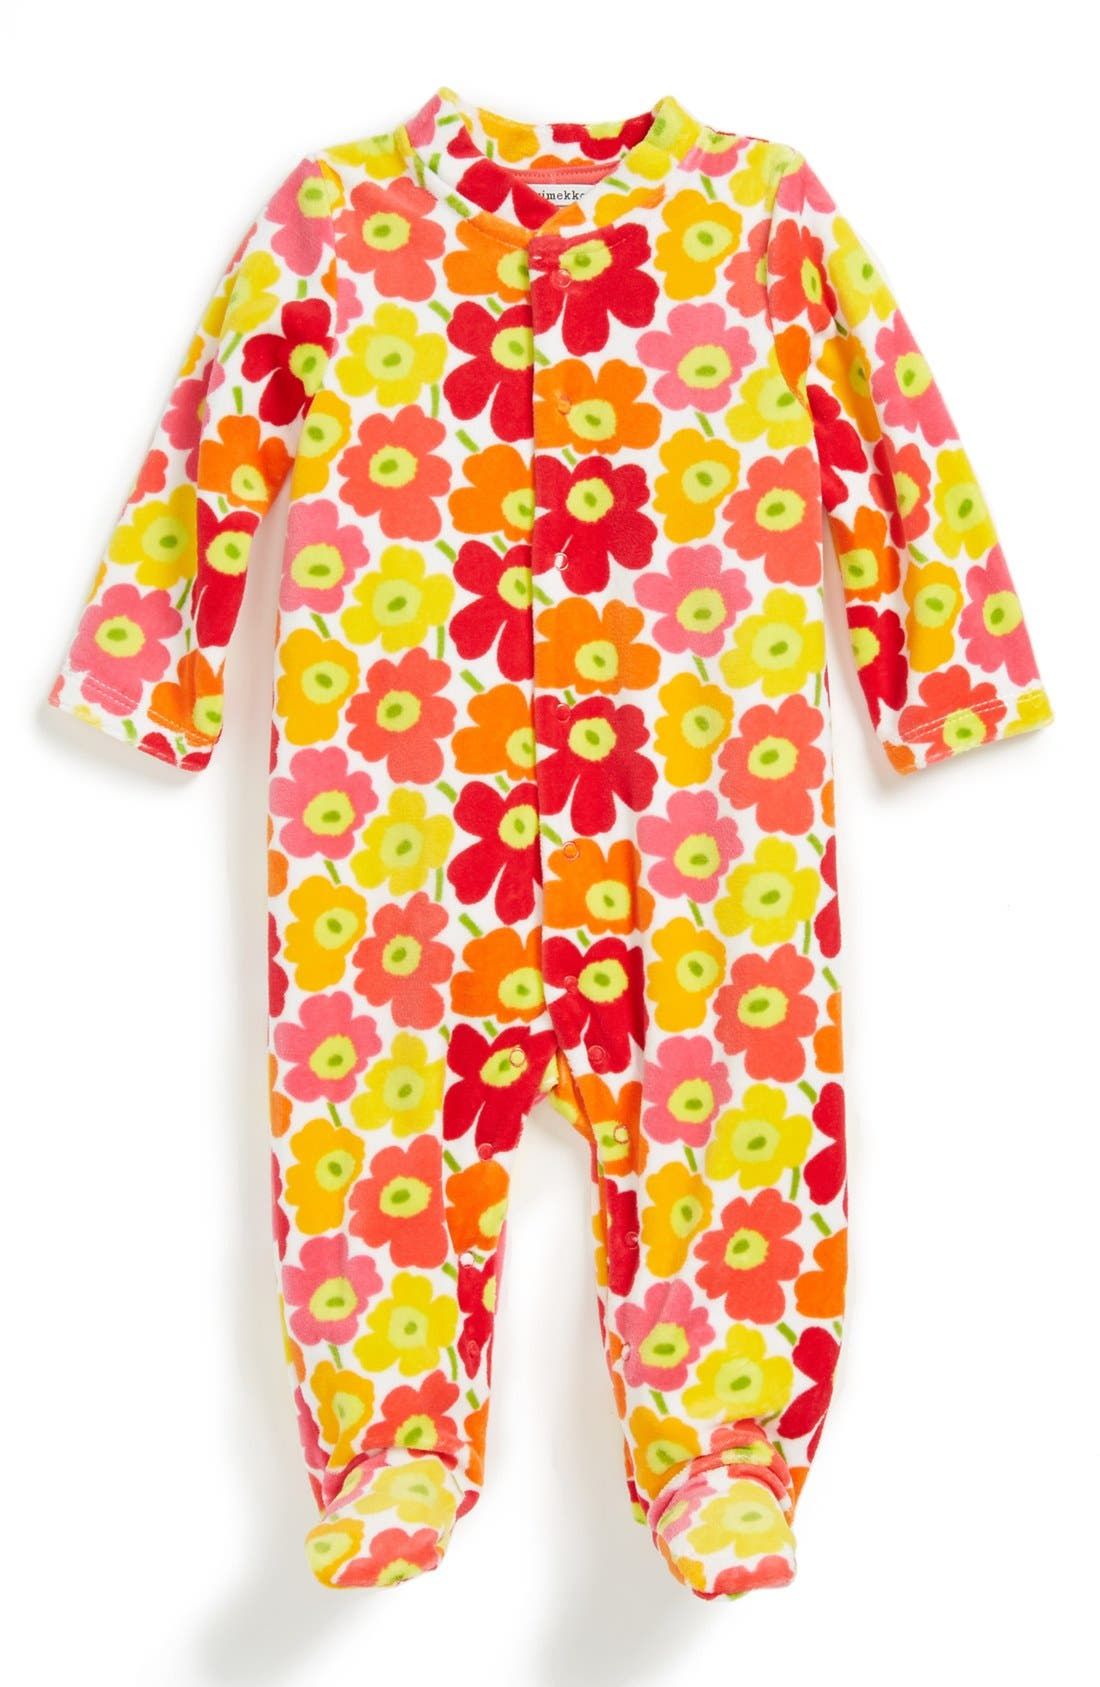 Alternate Image 1 Selected - Marimekko Floral One-Piece (Baby Girls)